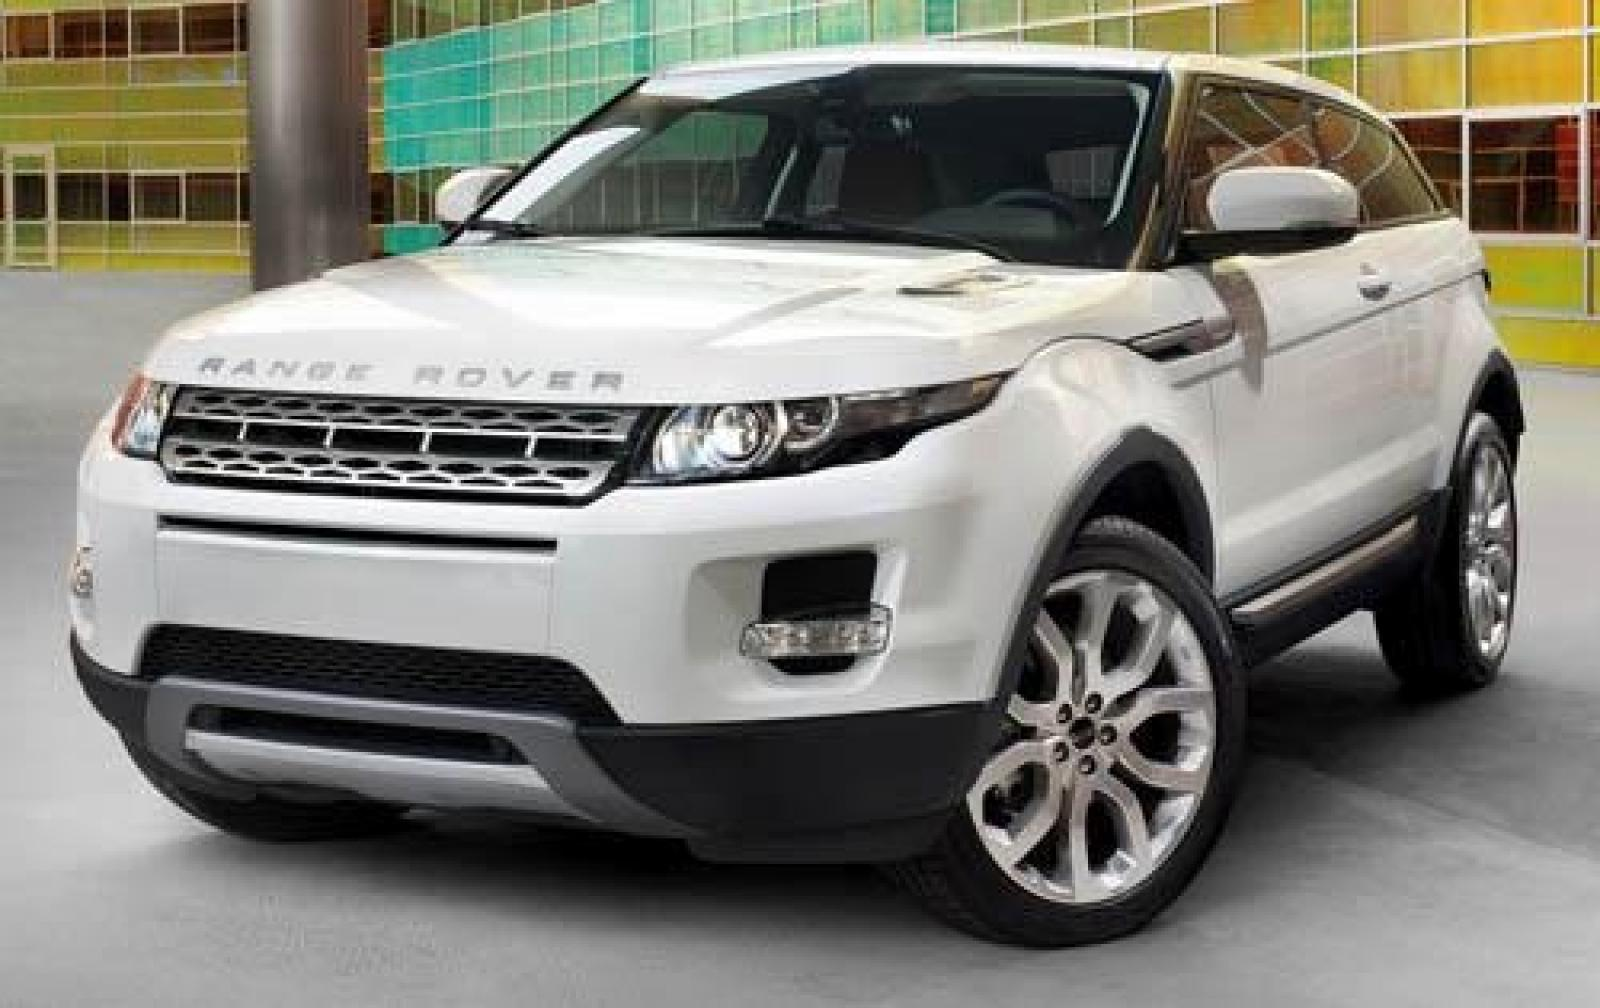 2012 land rover range rover evoque information and. Black Bedroom Furniture Sets. Home Design Ideas